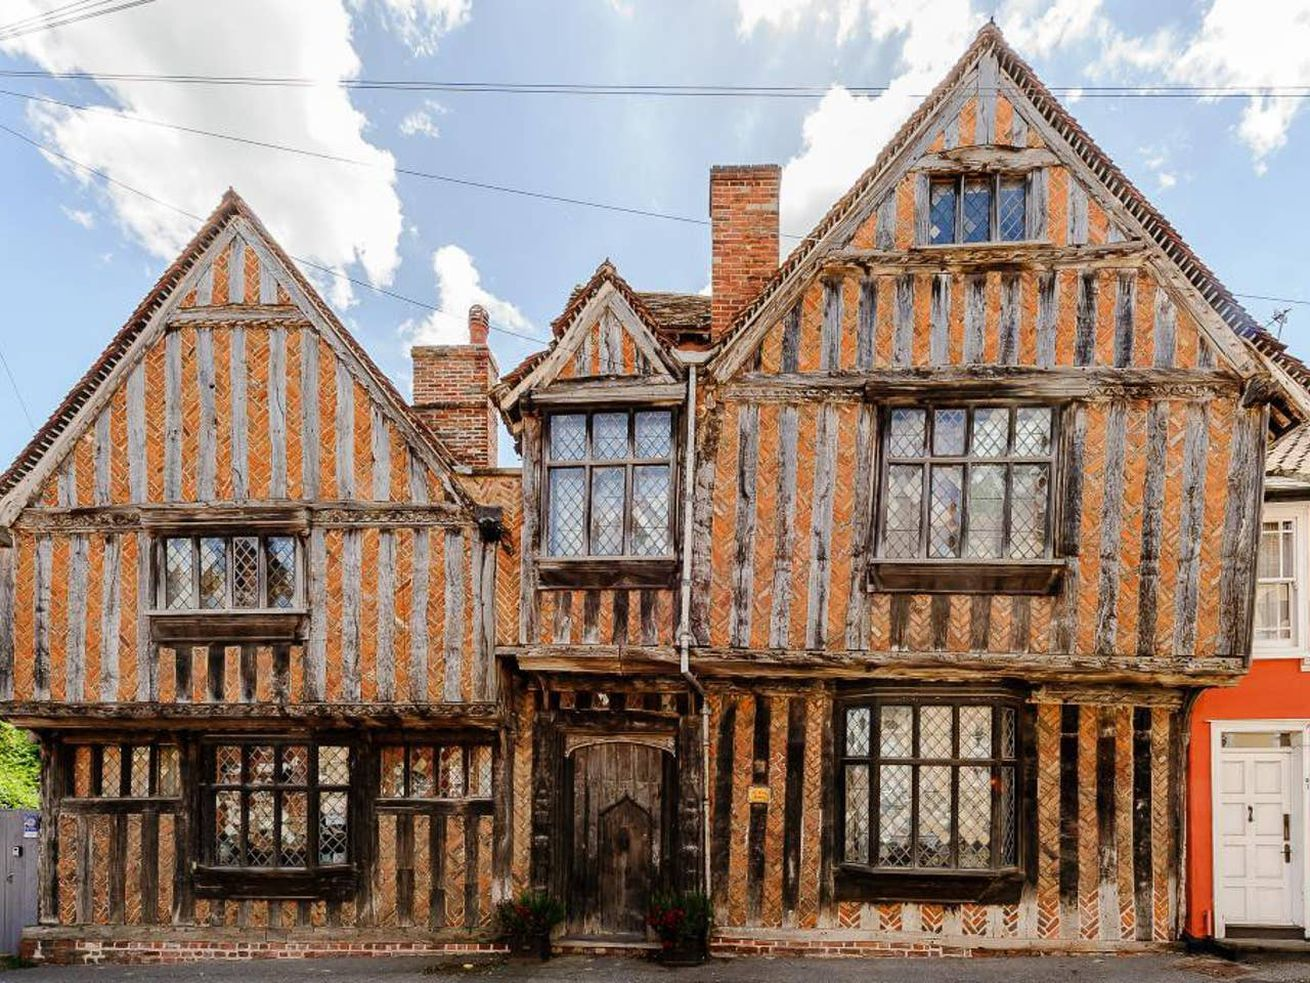 Harry Potter?s childhood home is now renting rooms on Airbnb